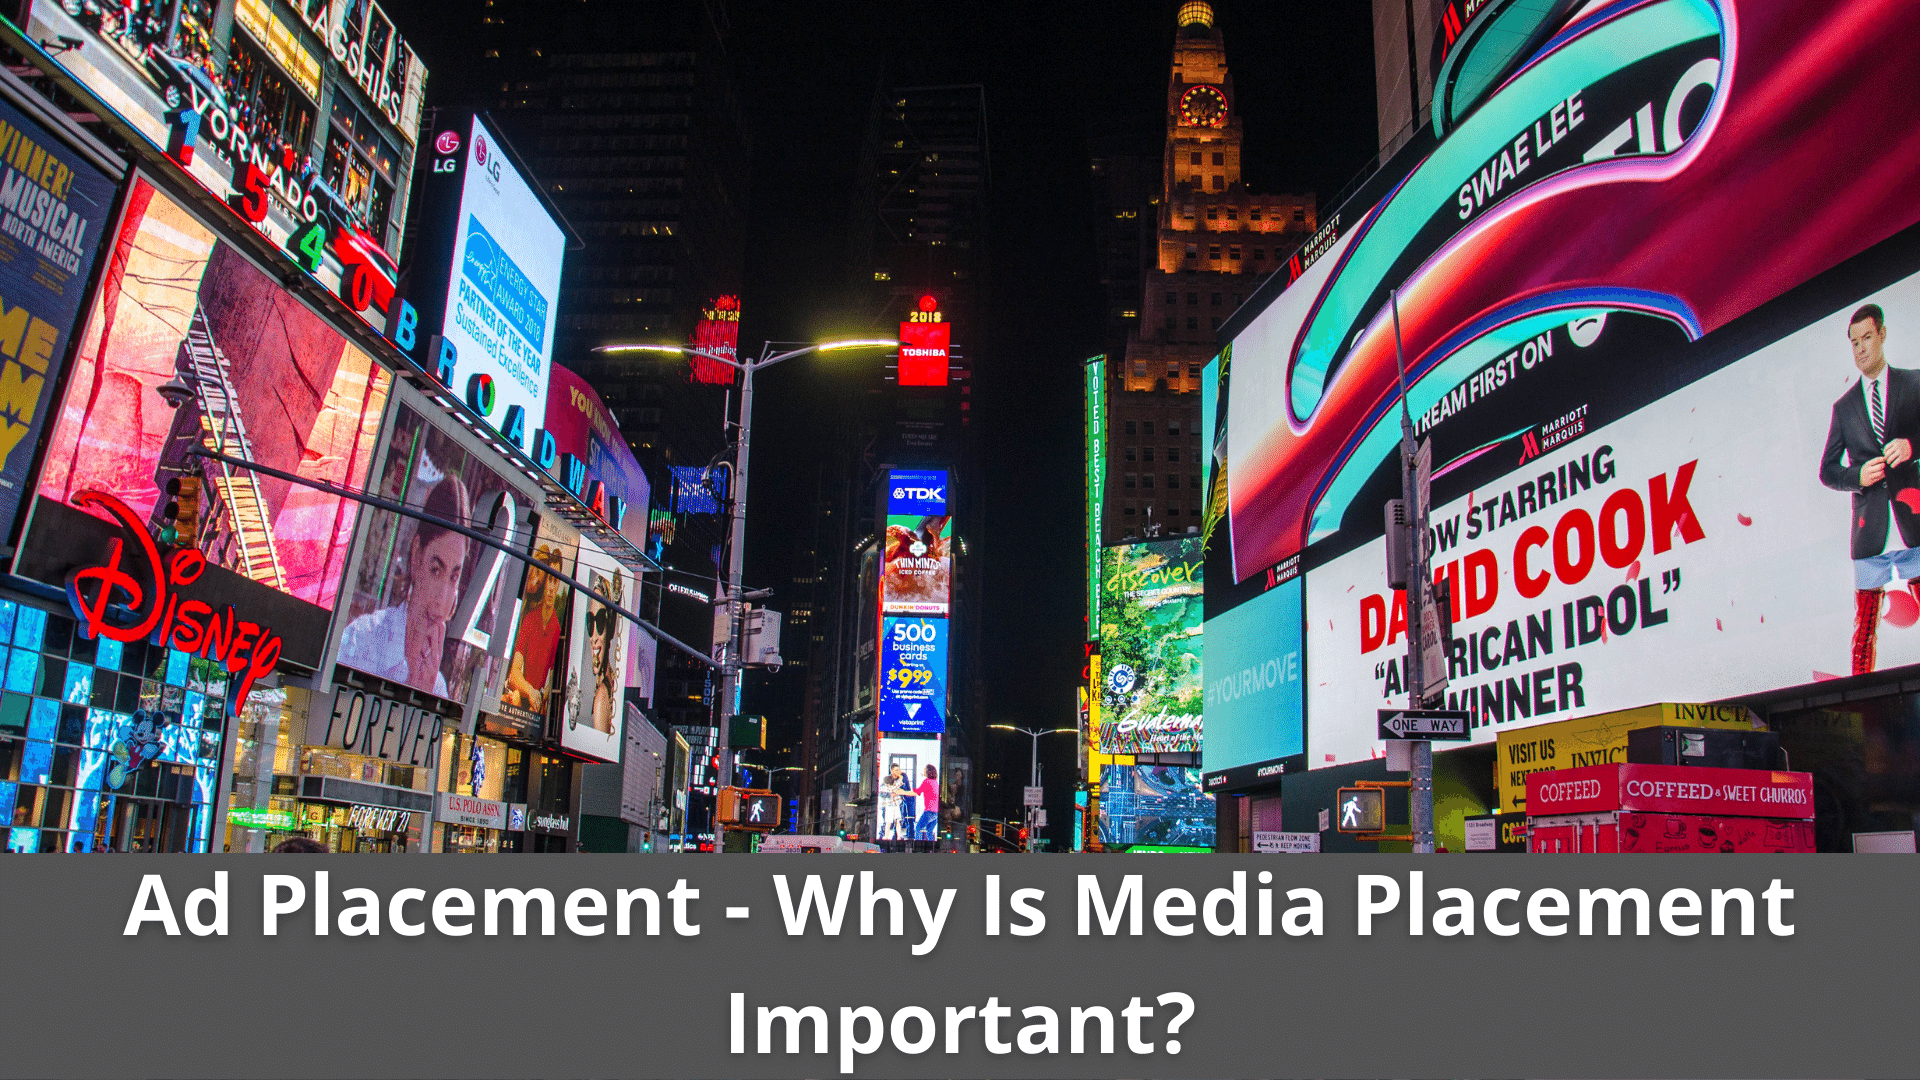 Ad Placement - Why Is Media Placement so Important? 6